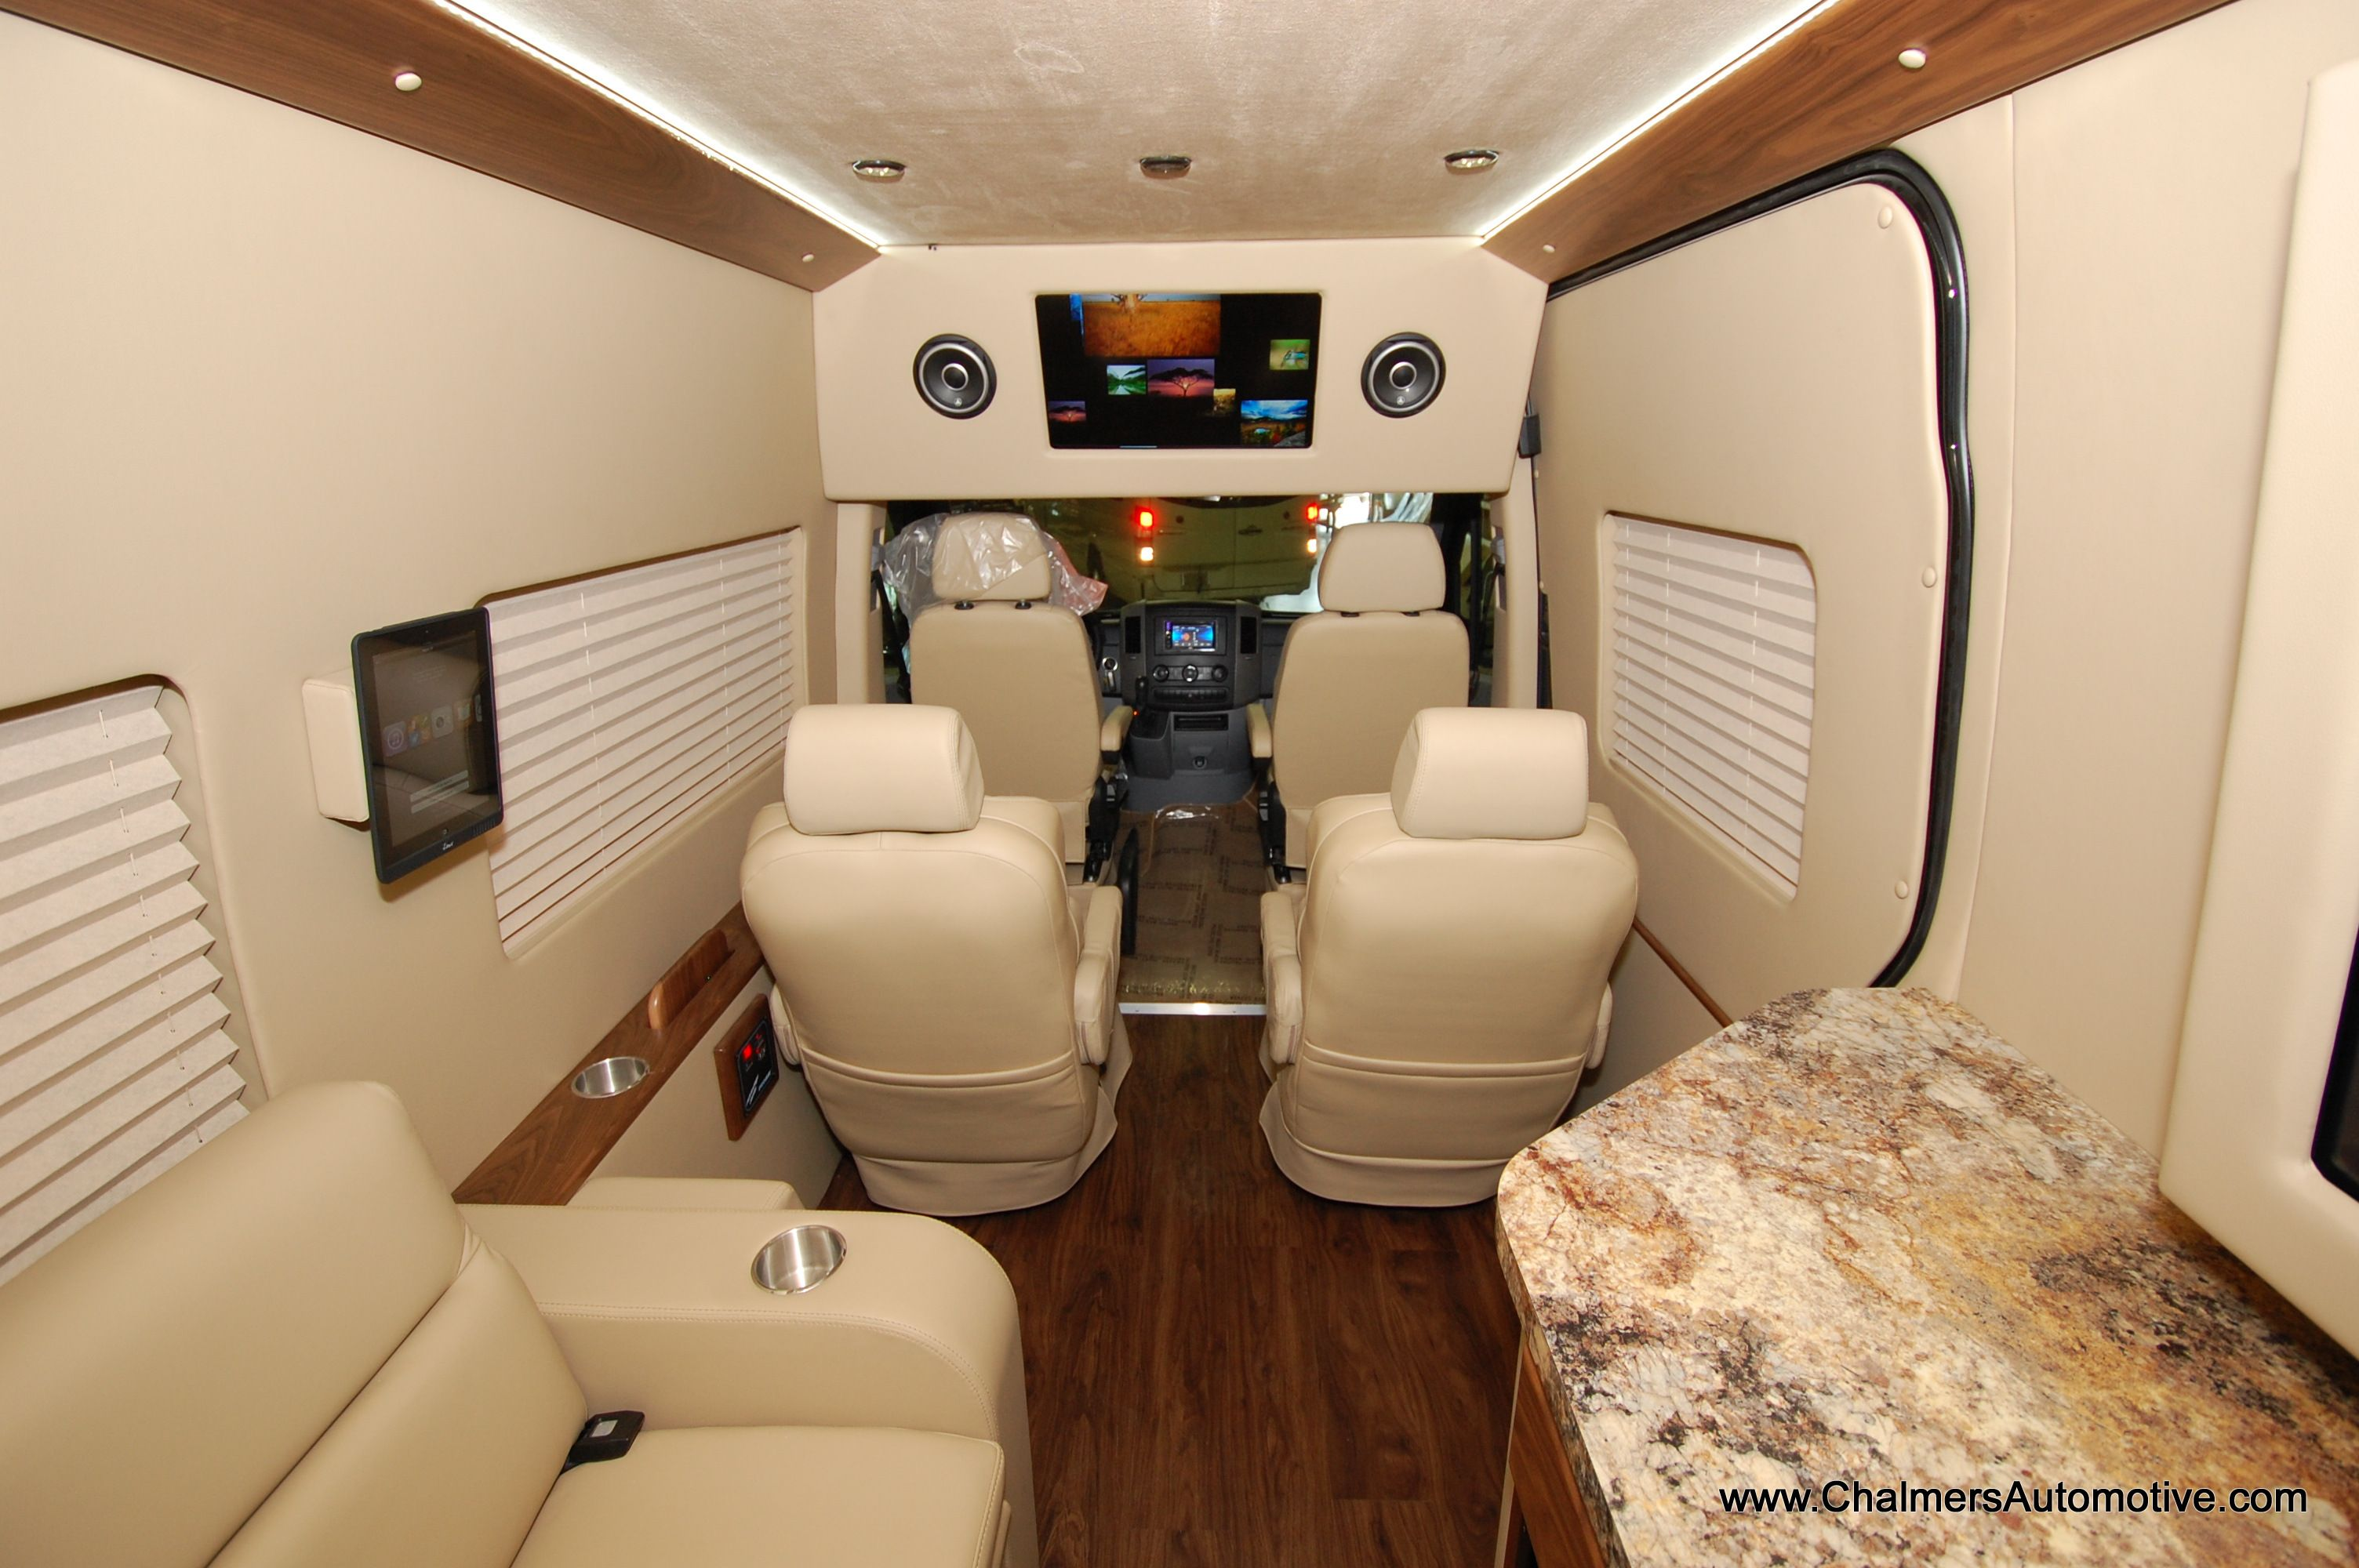 lexani grazia plated sprinter hardware van meet transport lavish motorcars benz gold that mercedes with a seating comes customizable and custom conversion